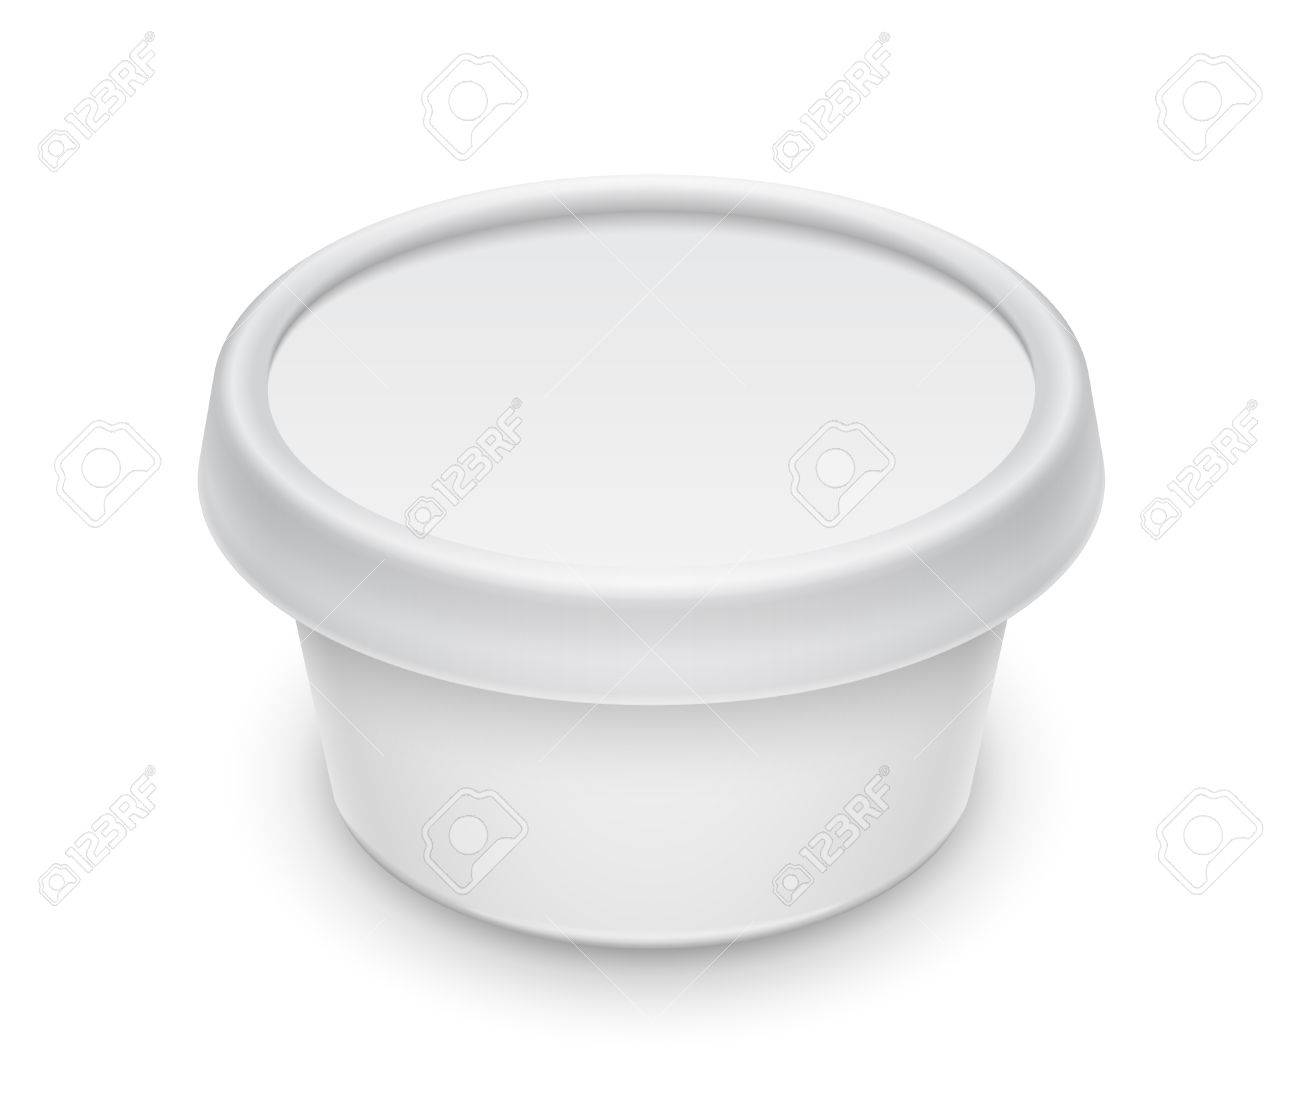 Vector White Round Container For Cosmetics Cream Butter Or